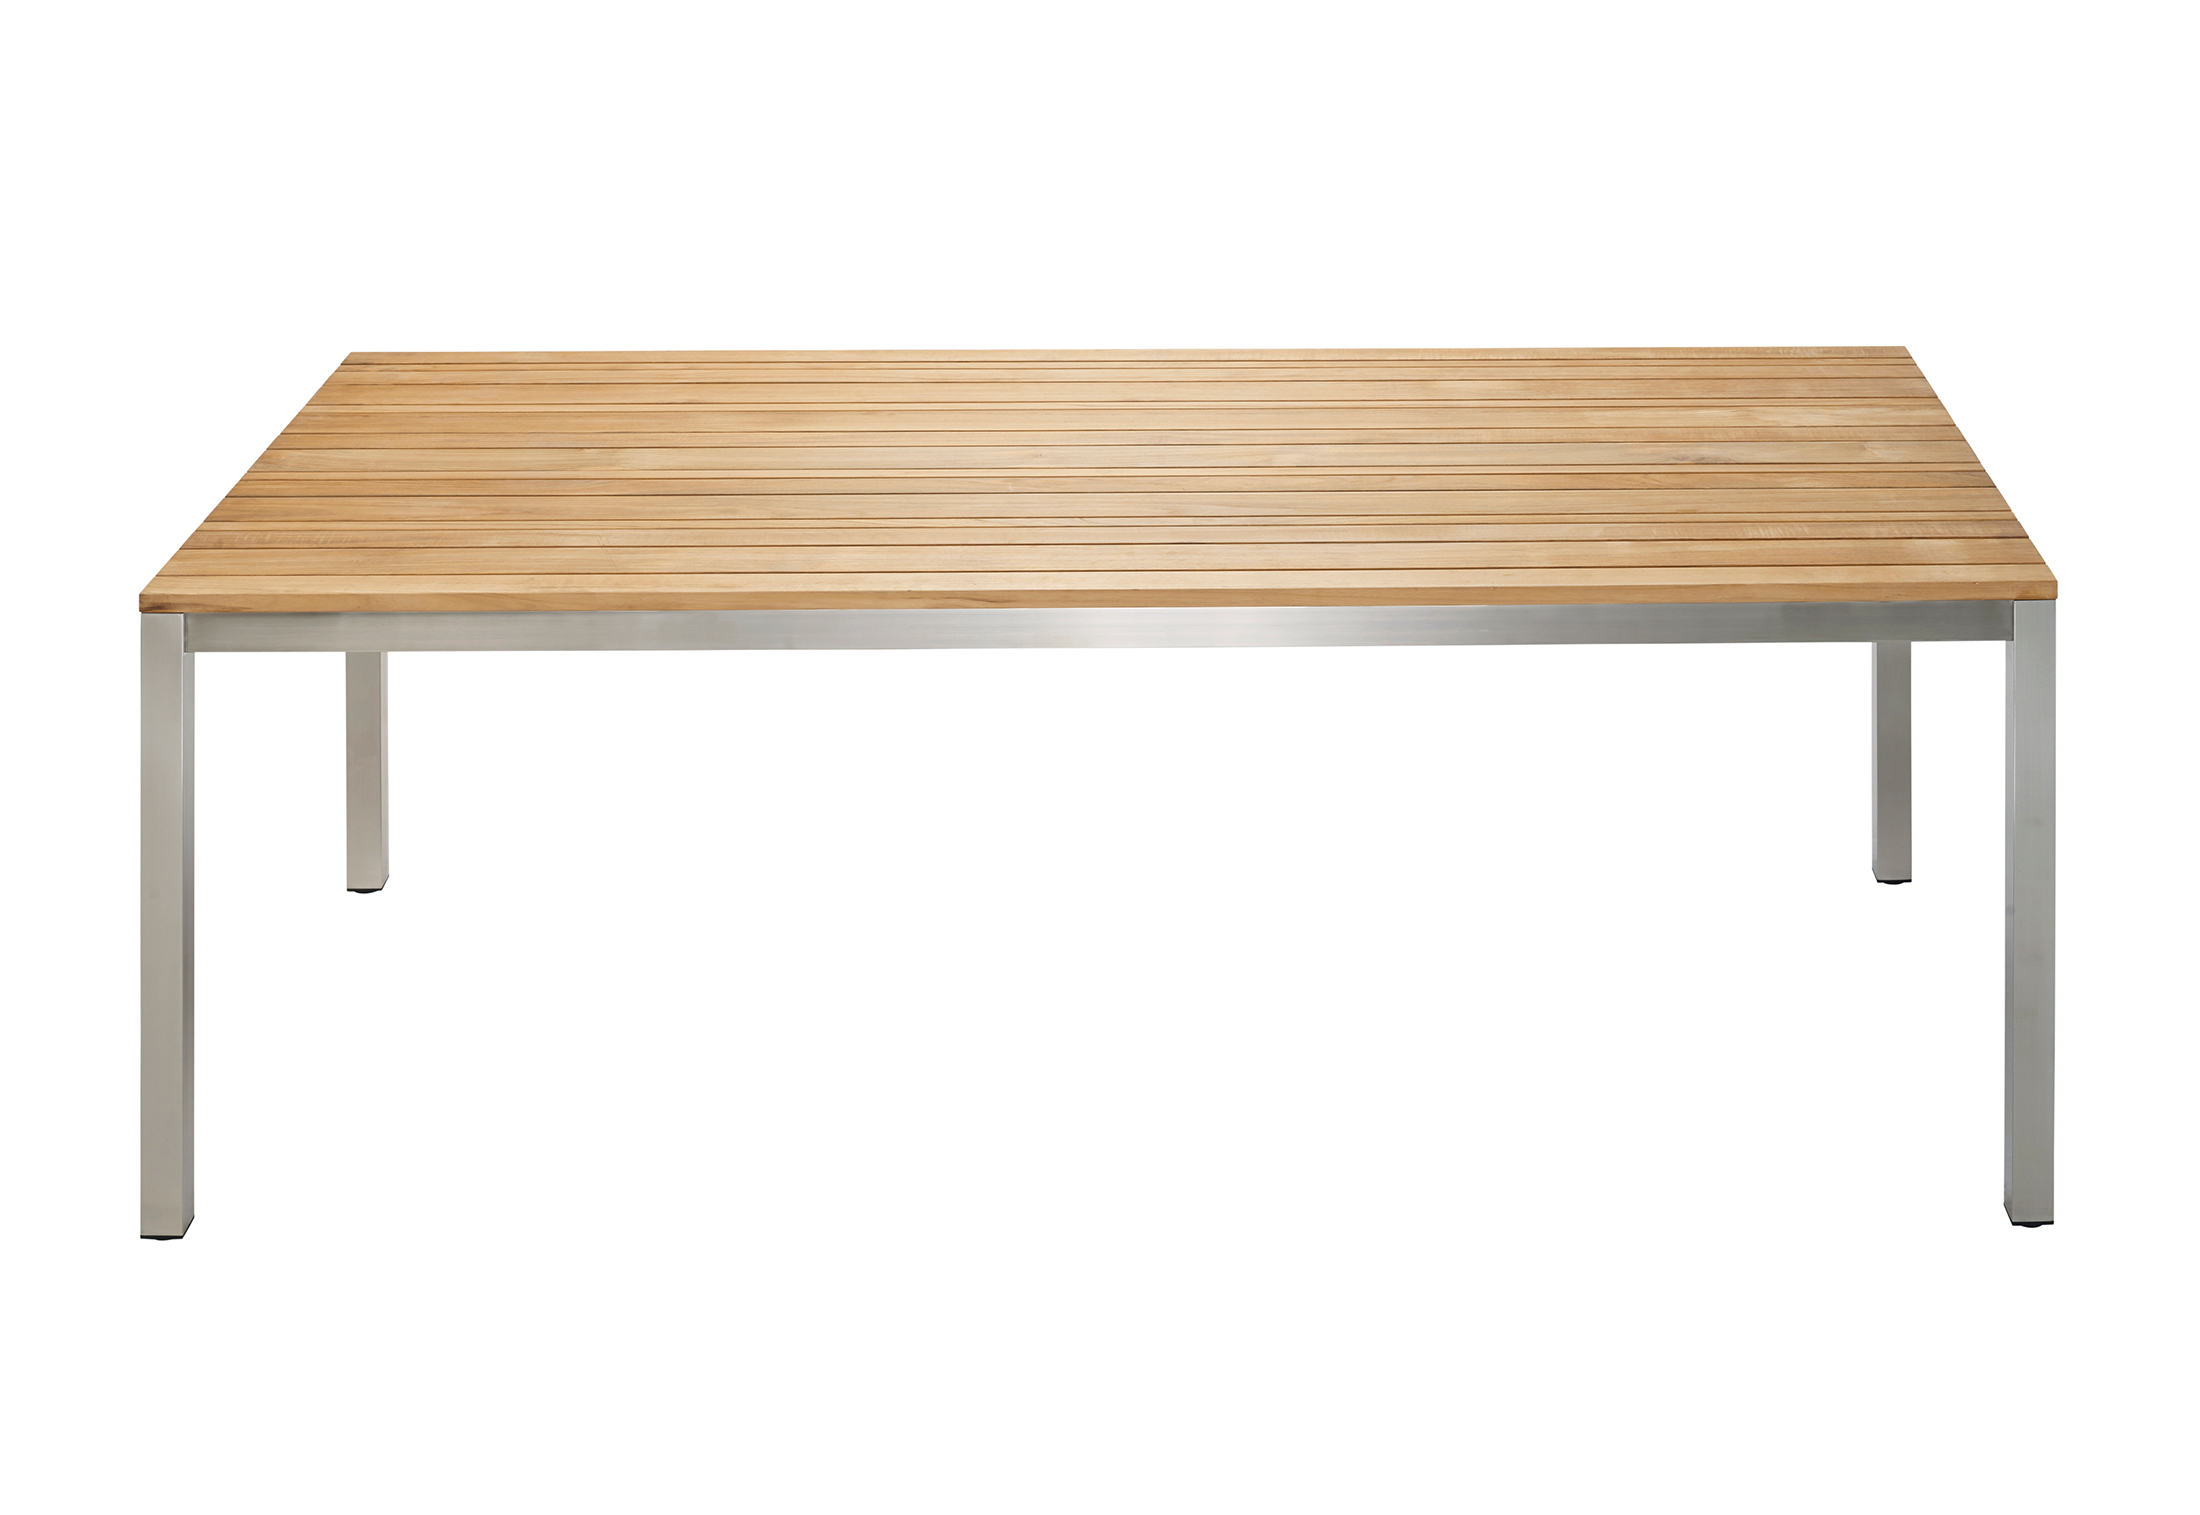 Classic Stainless Steel Dining Table By Solpuri Stylepark